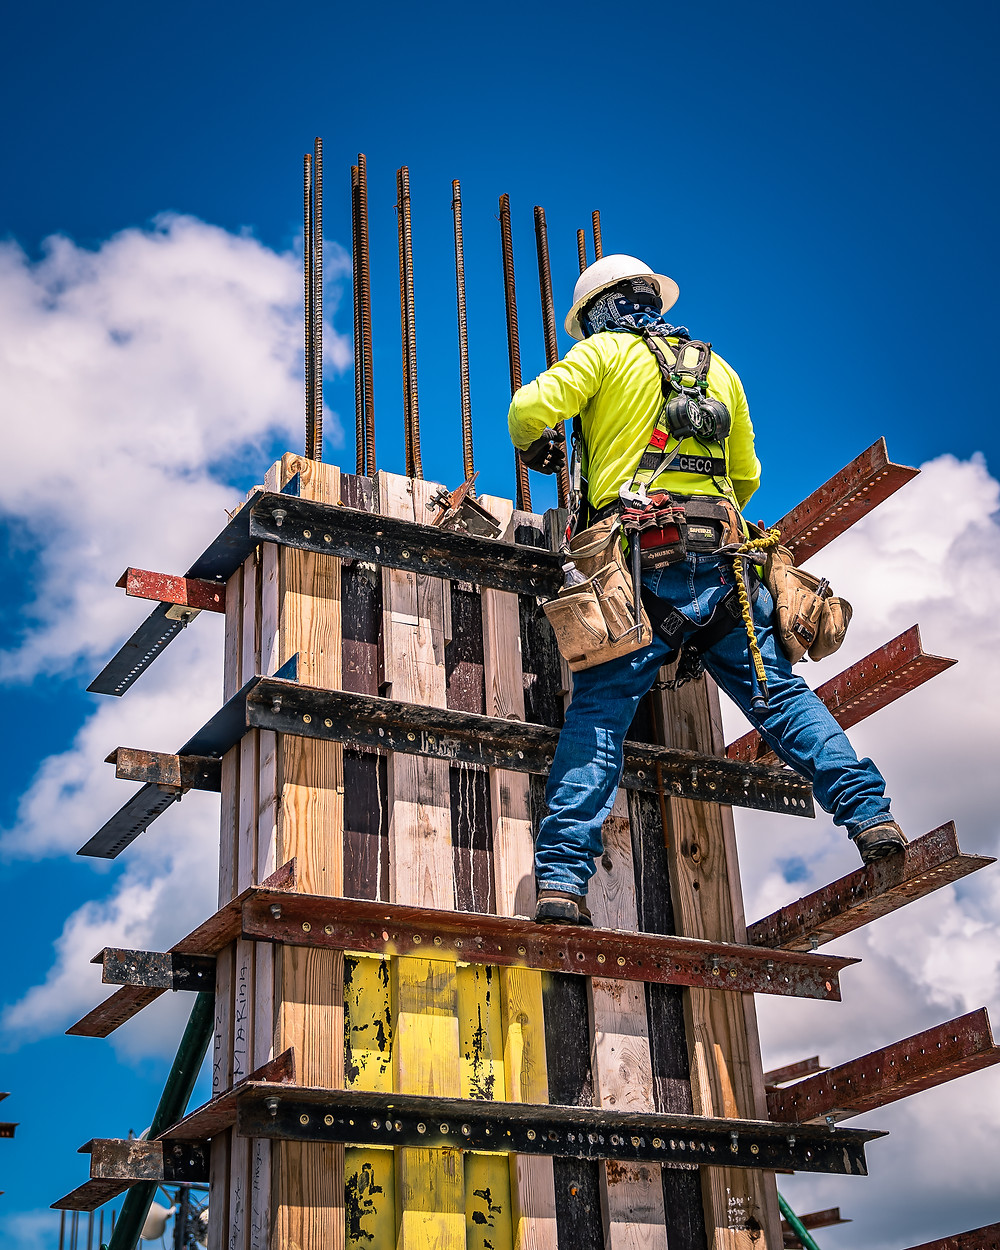 Man with a safety hat - on a scaffolding on a construction jobsite